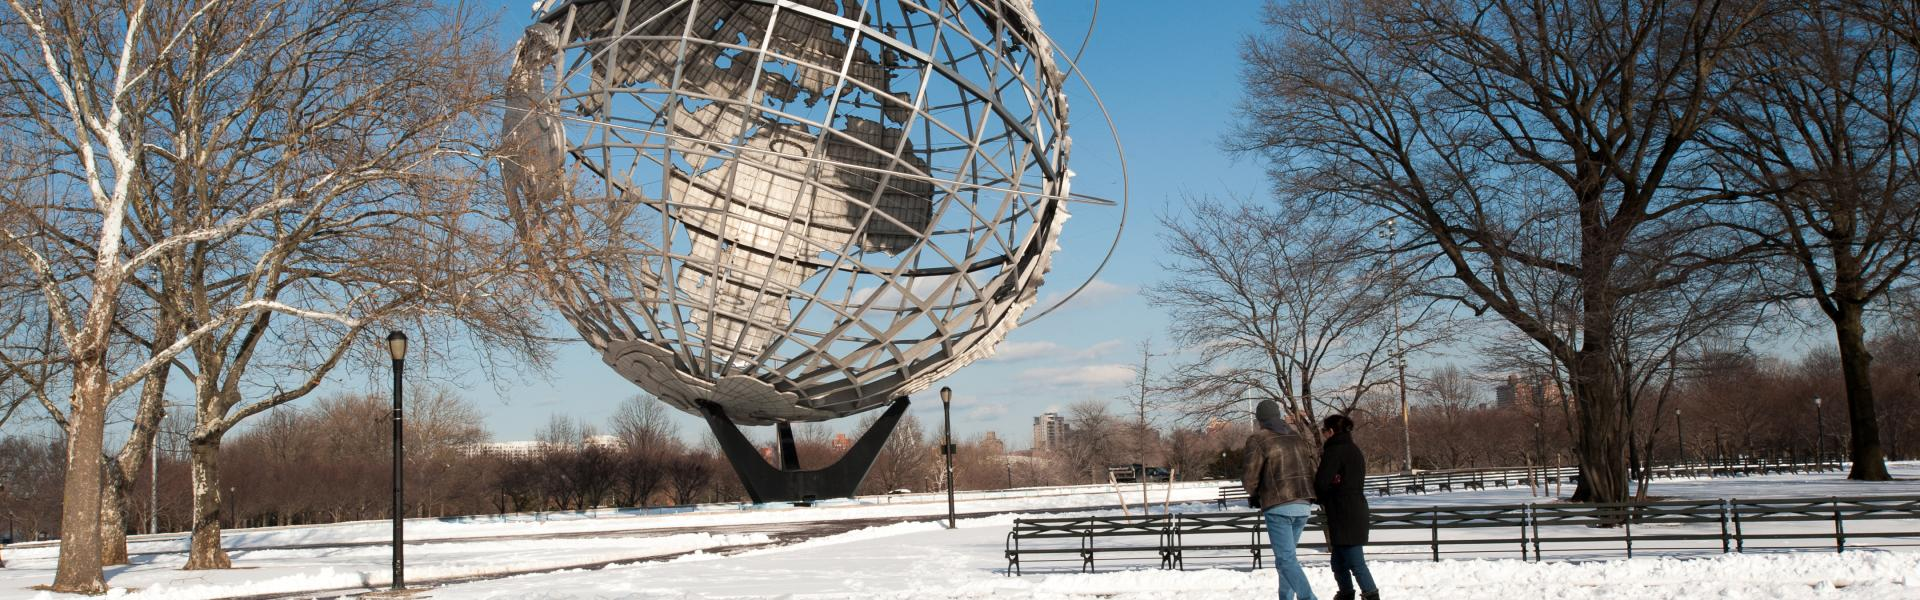 Unisphere, Winter, Snow, Daytime